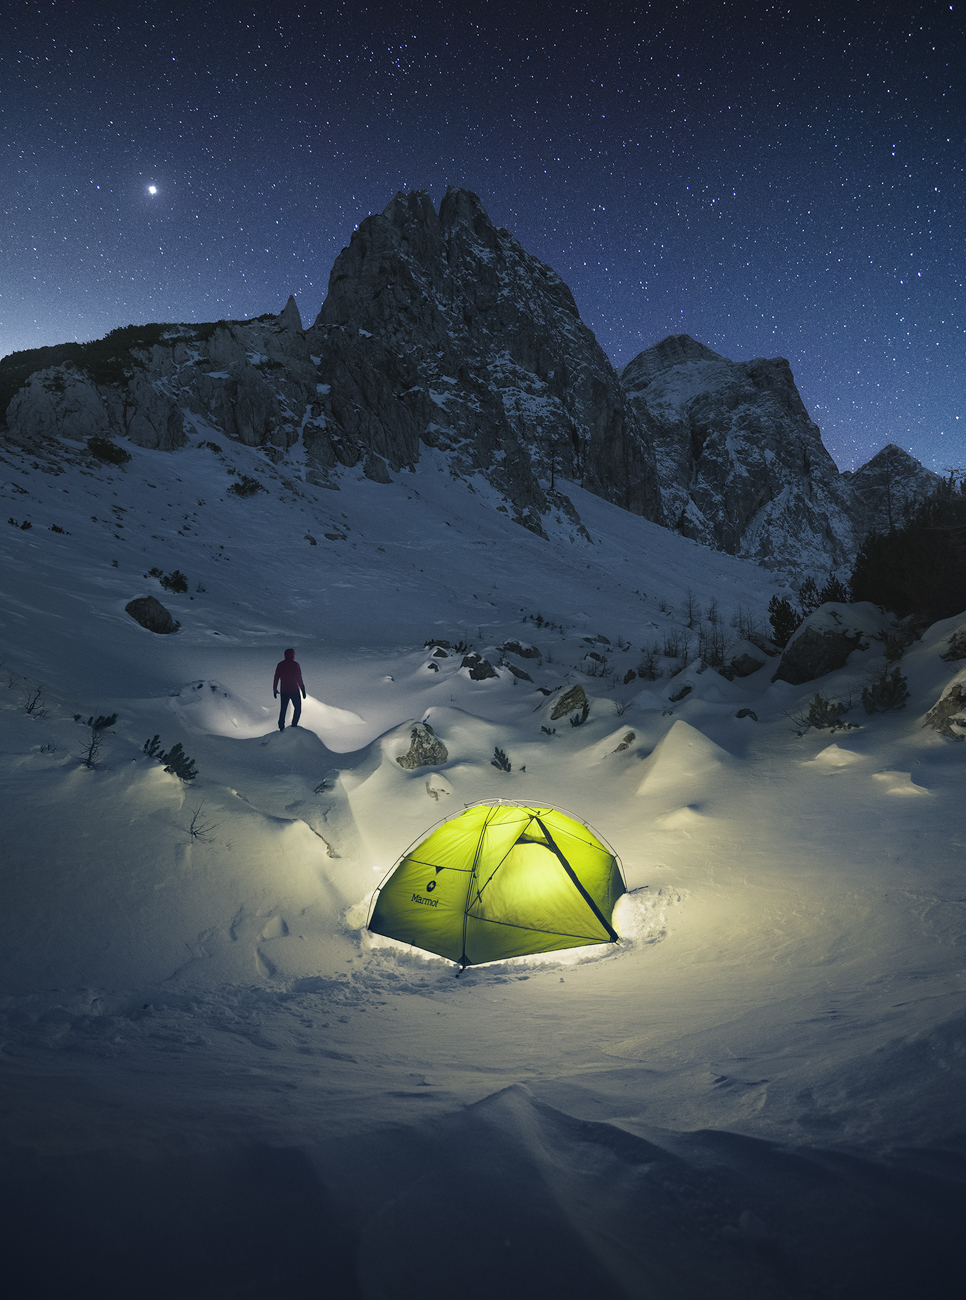 Winter Camping...